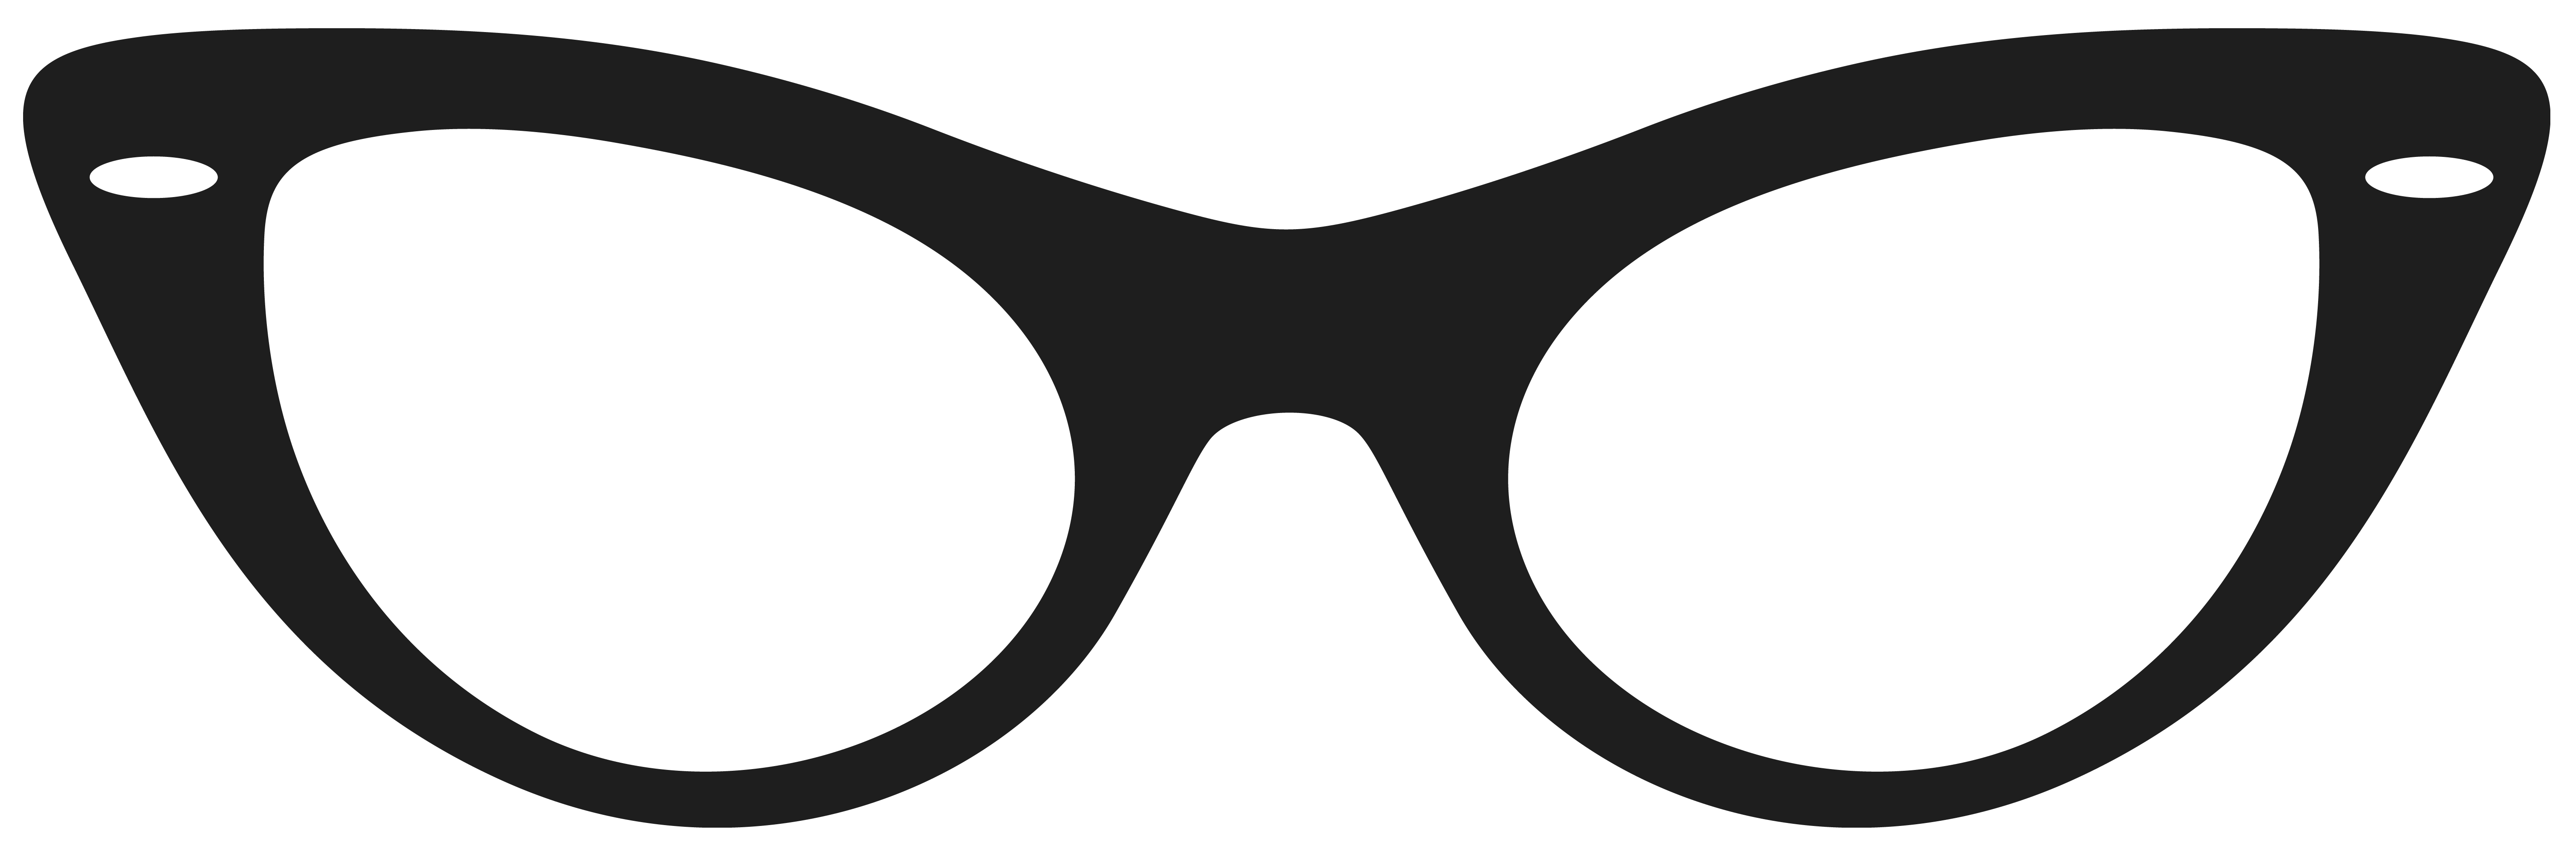 Cartoon glasses png. Movember clipart picture gallery